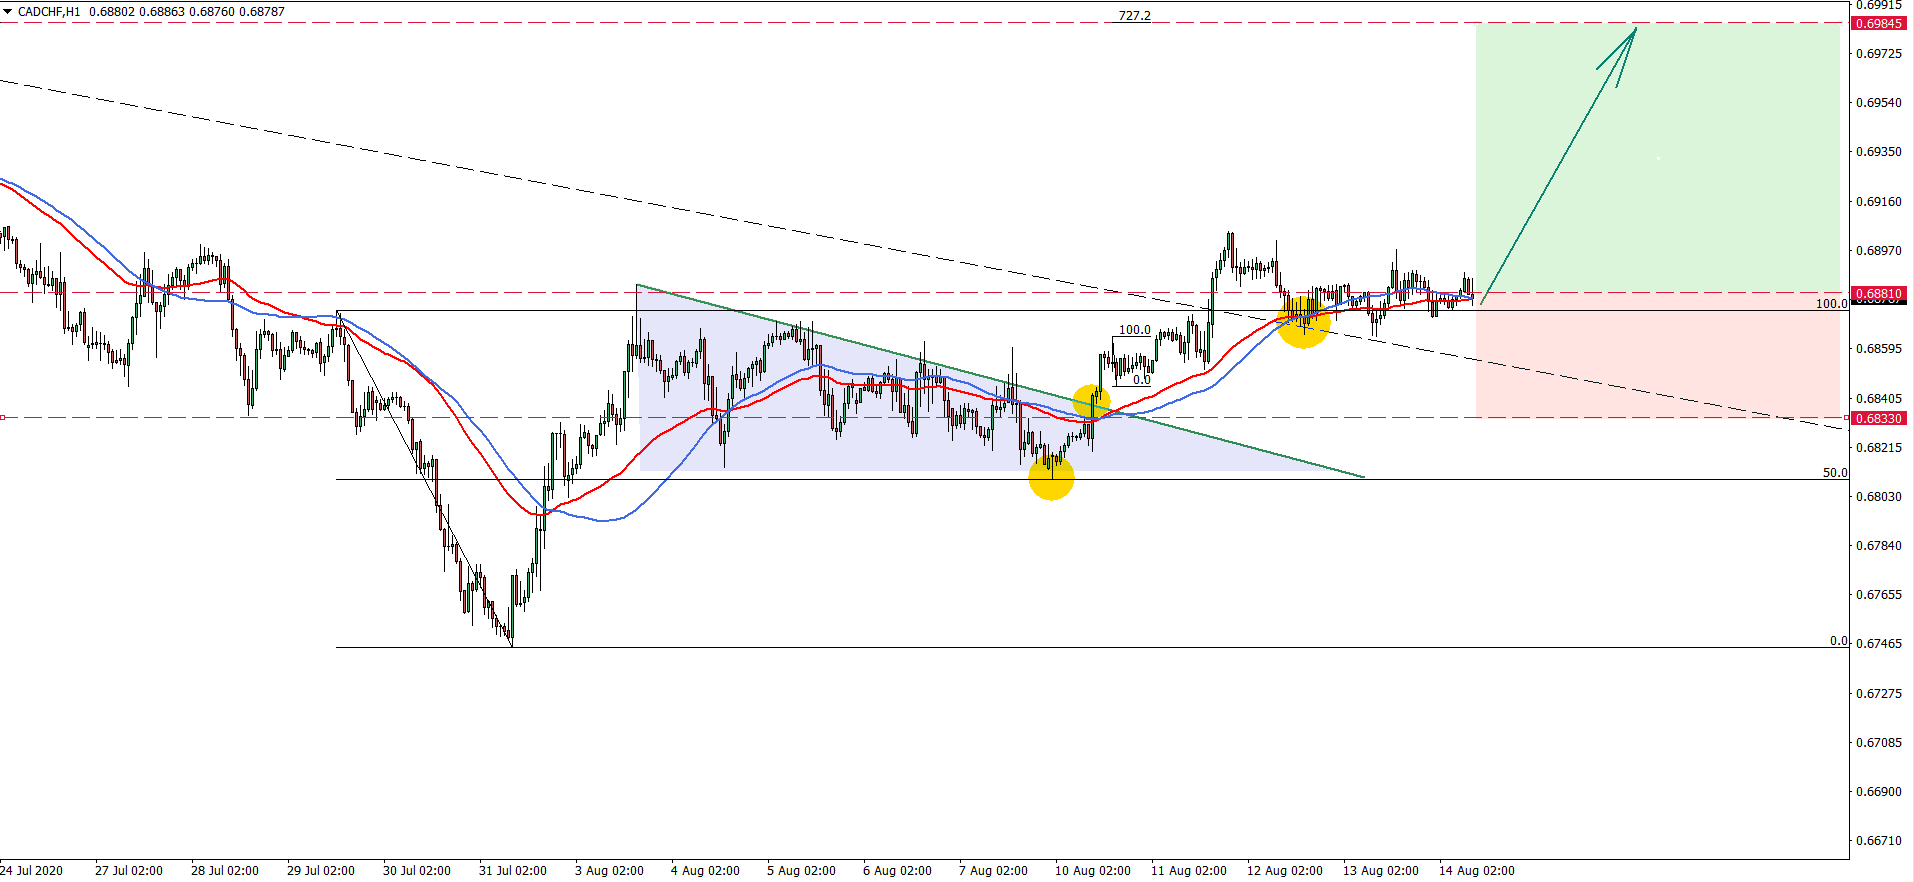 CADCHF hourly chart Aug 14th 2020